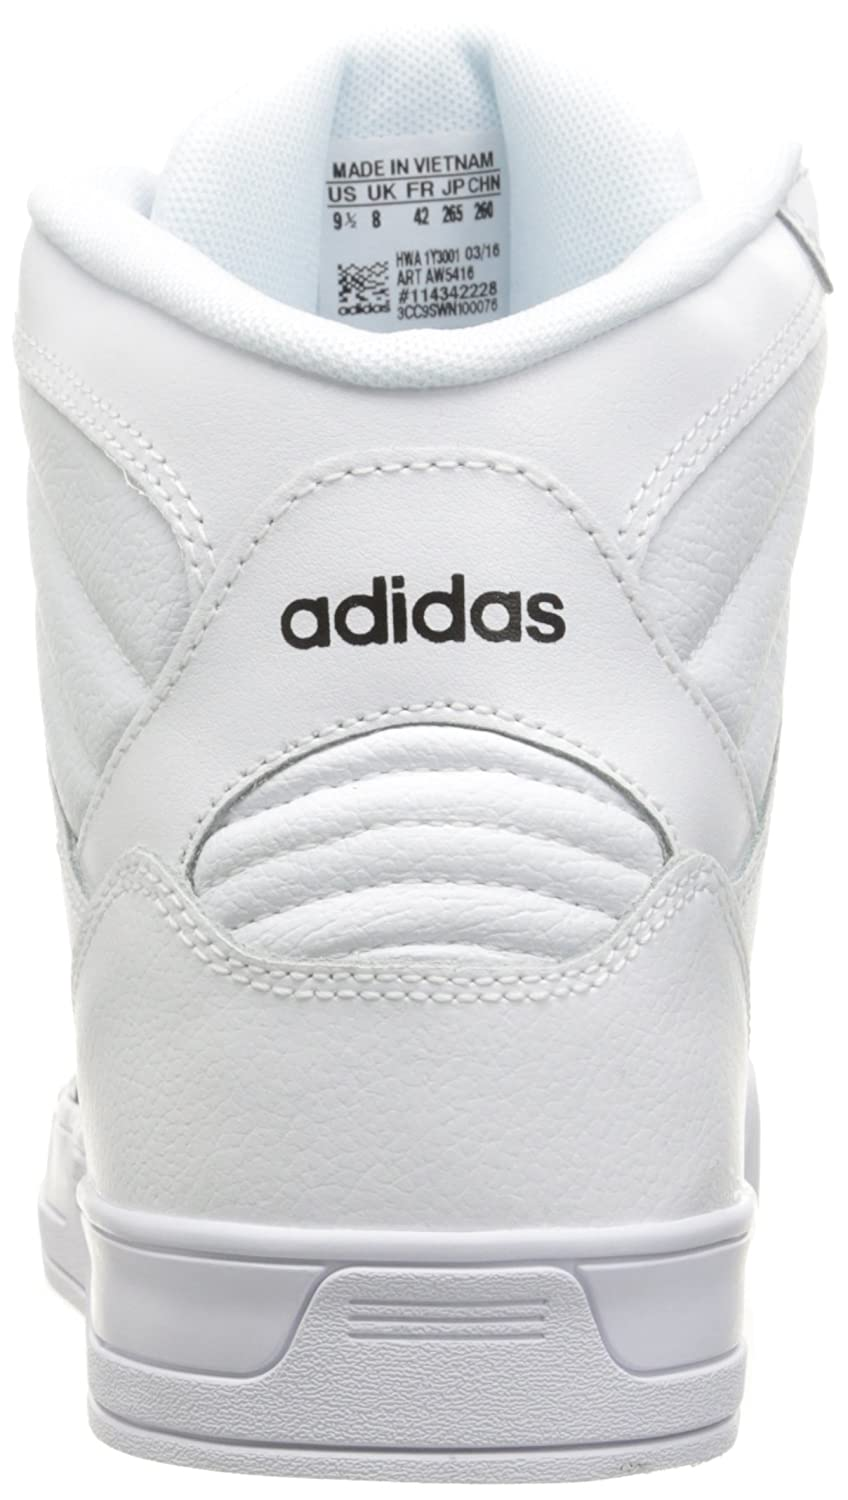 Adidas Shoes  Adidas Neo BBNeo Advantage Womens Sports Shoes White